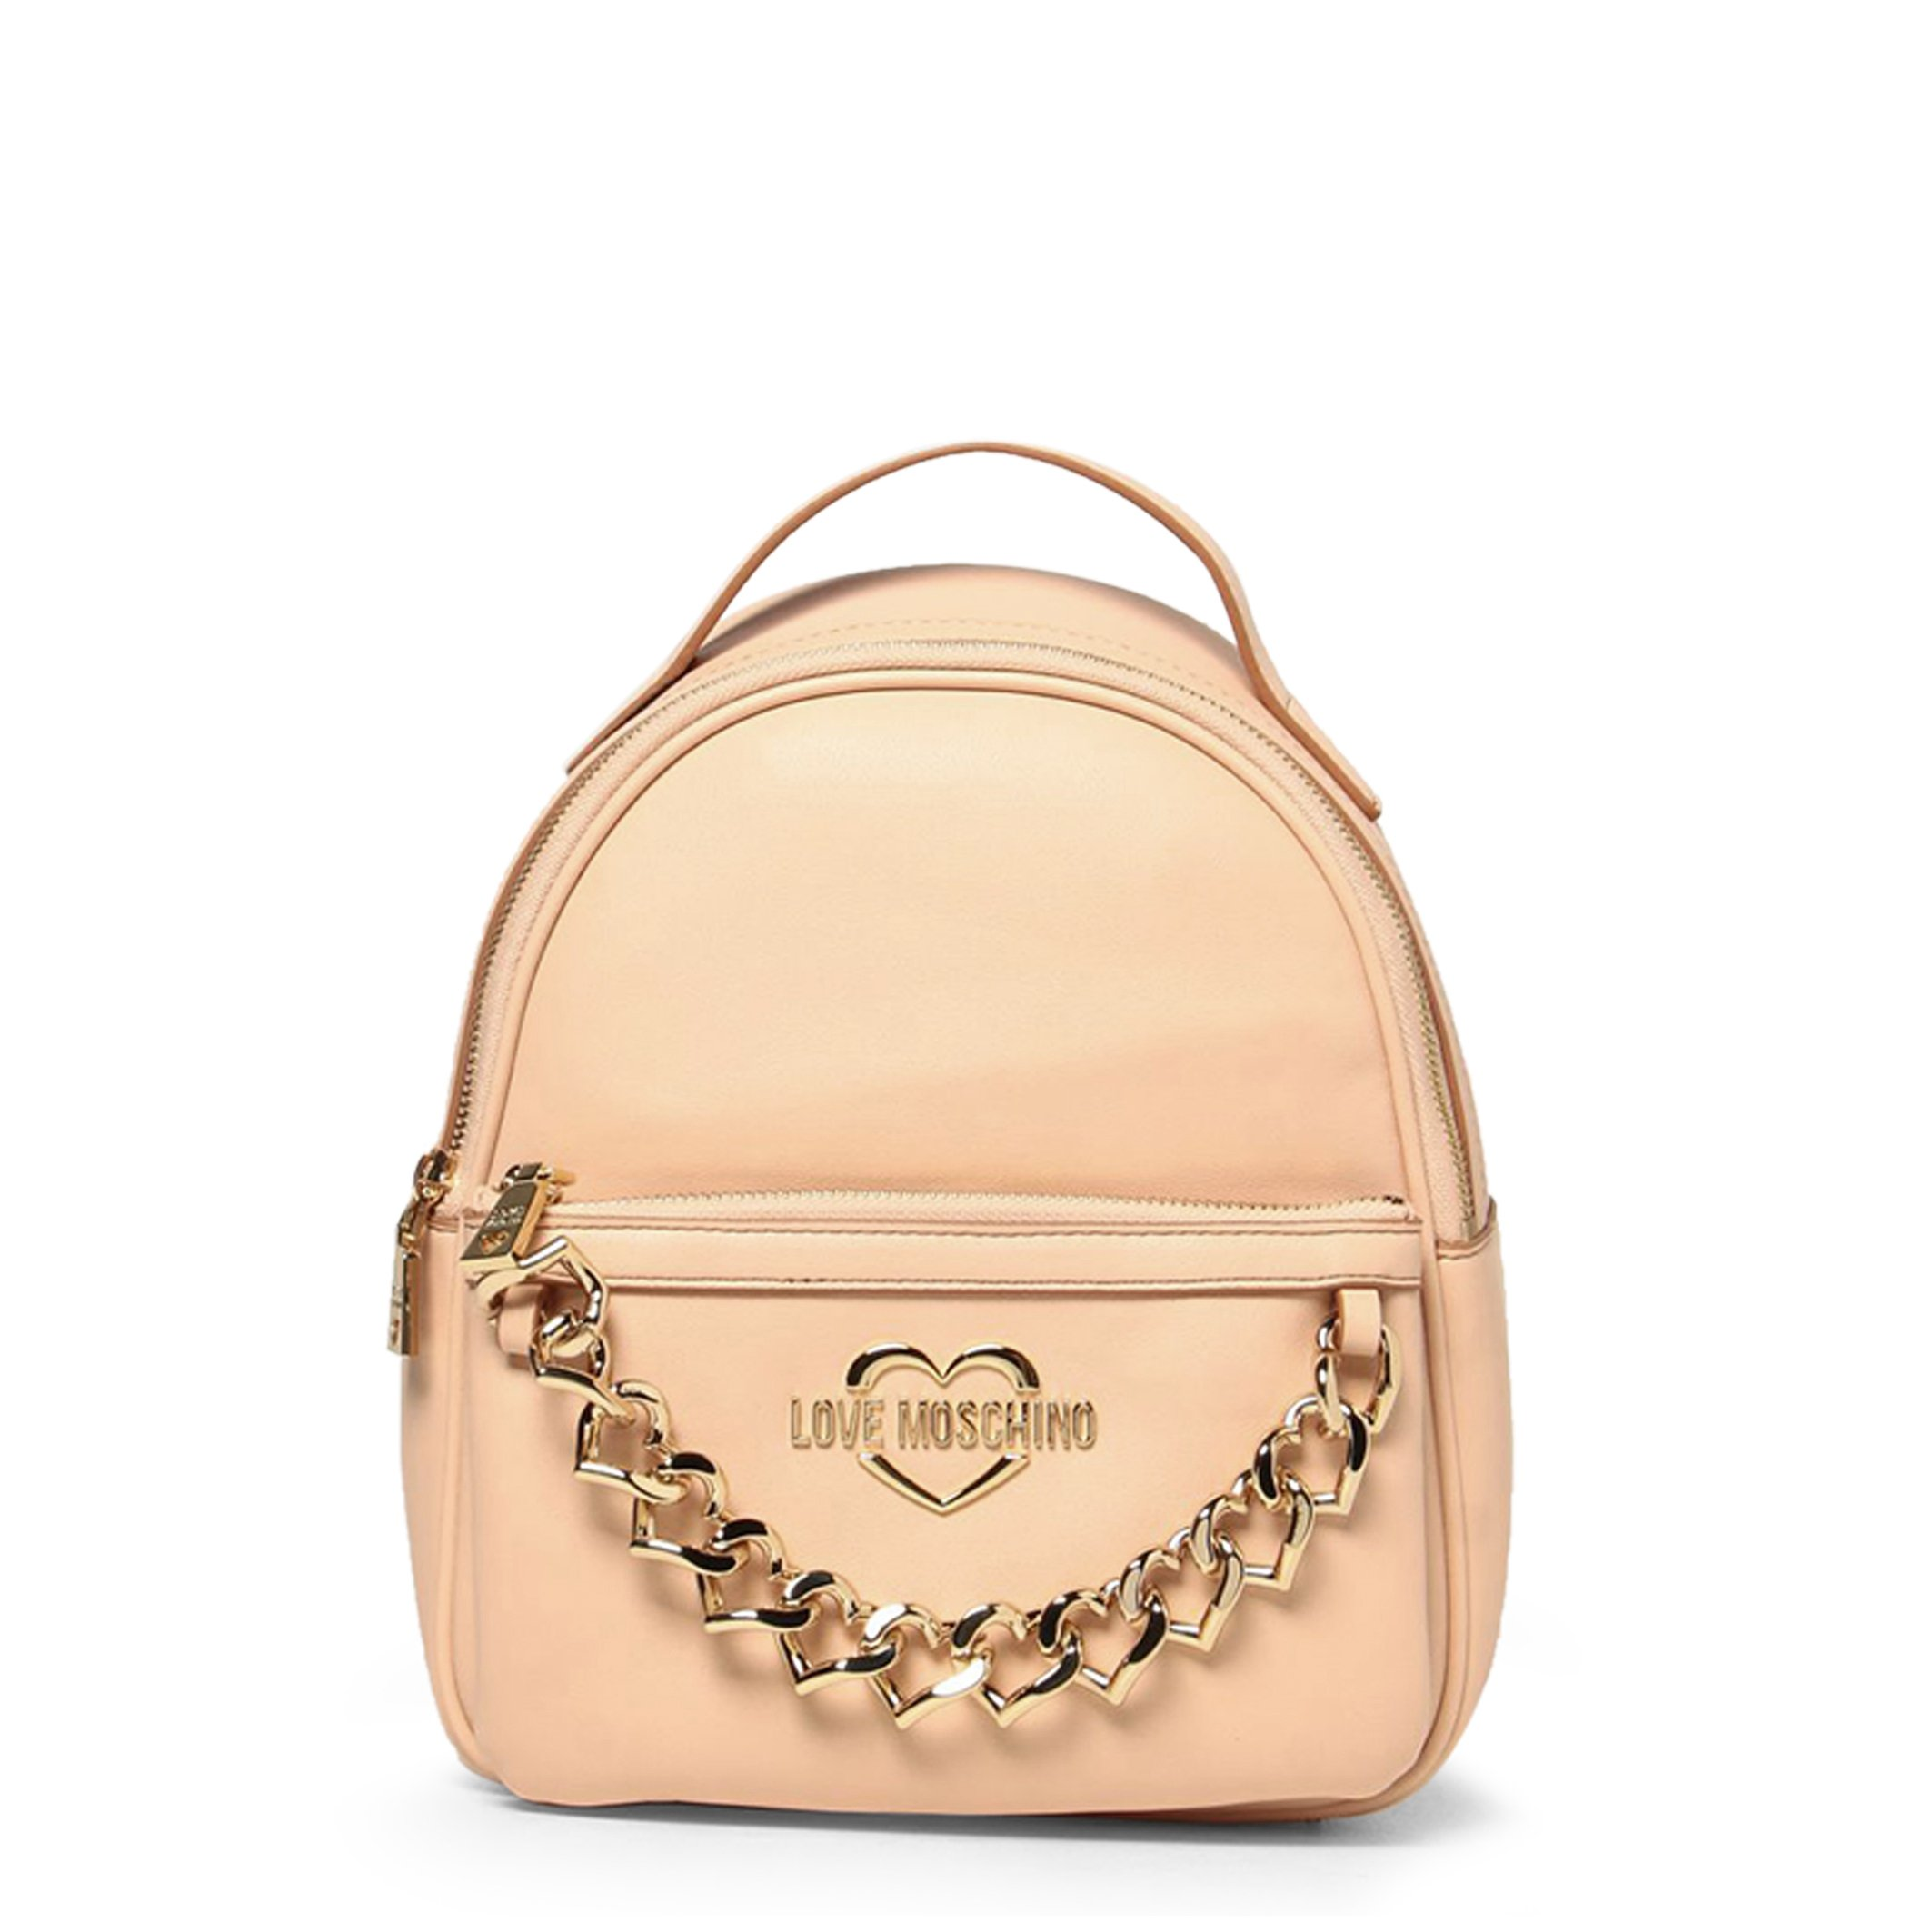 Love Moschino Women's Backpack Various Colours JC4194PP1DLK0 - brown NOSIZE